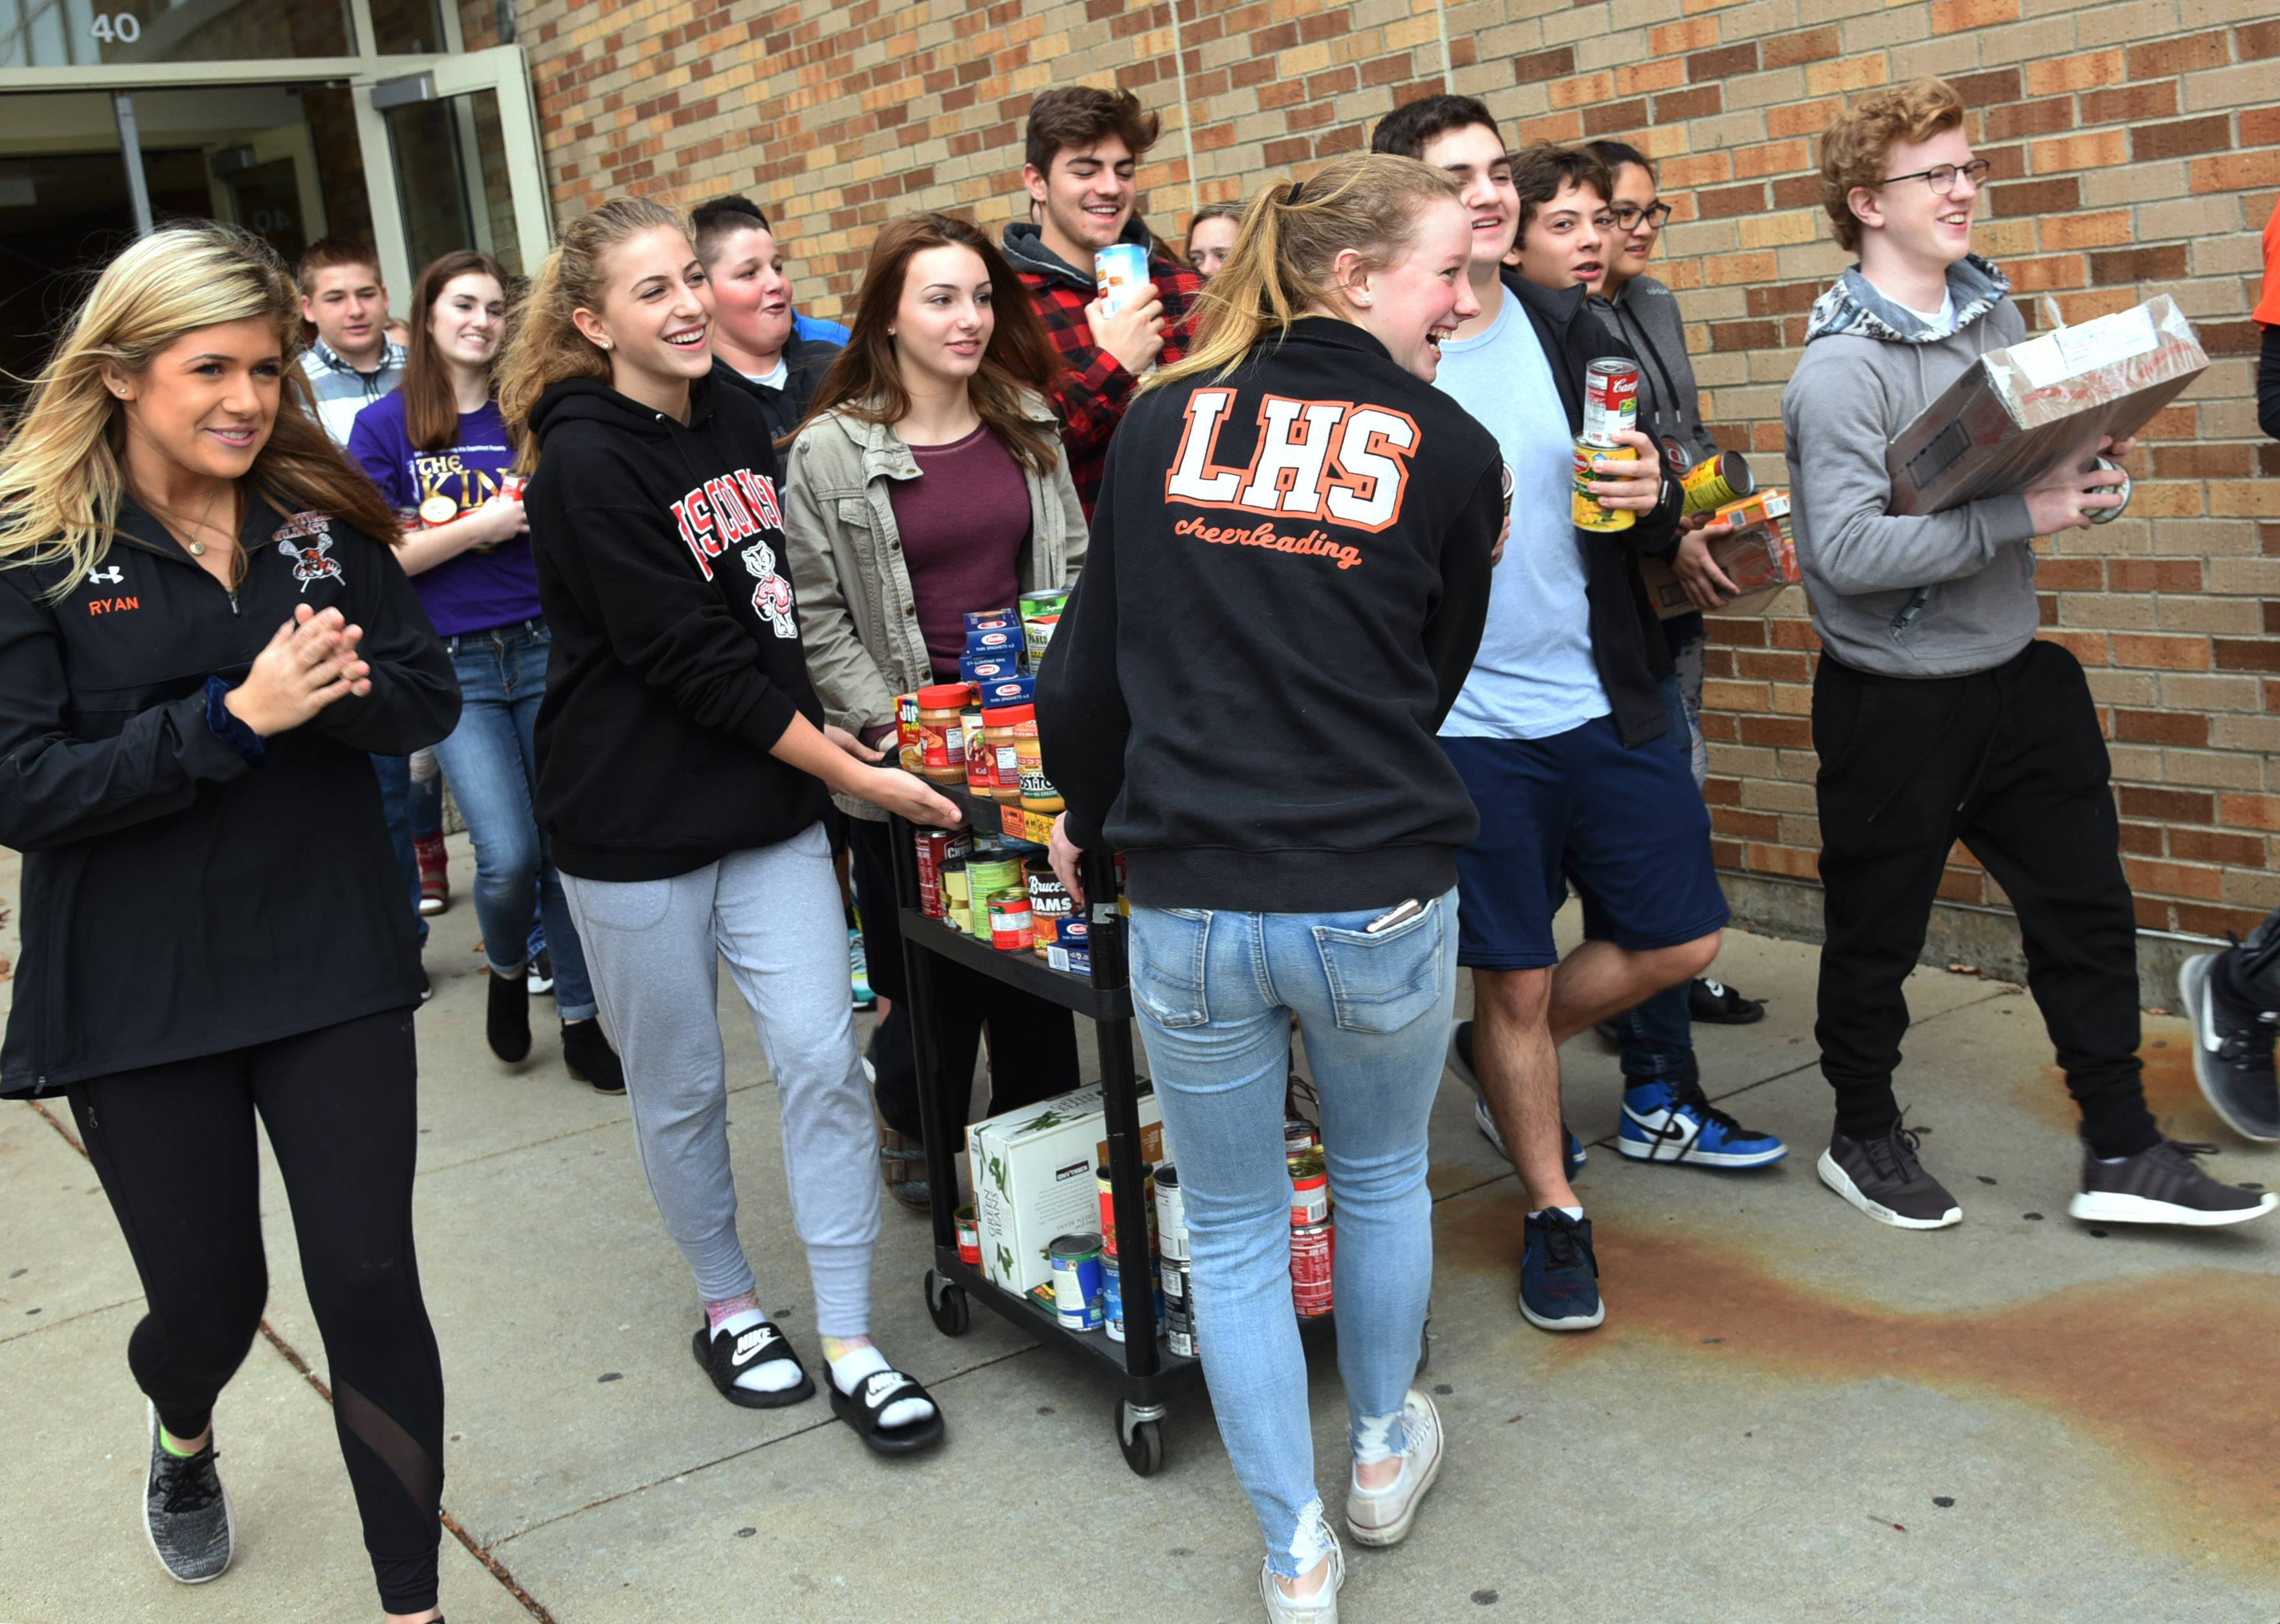 Libertyville High School and the Student Council held a canned food drive for the Libertyville Township food pantry. On Friday, students moved the items to township trucks to be delivered to the pantry.